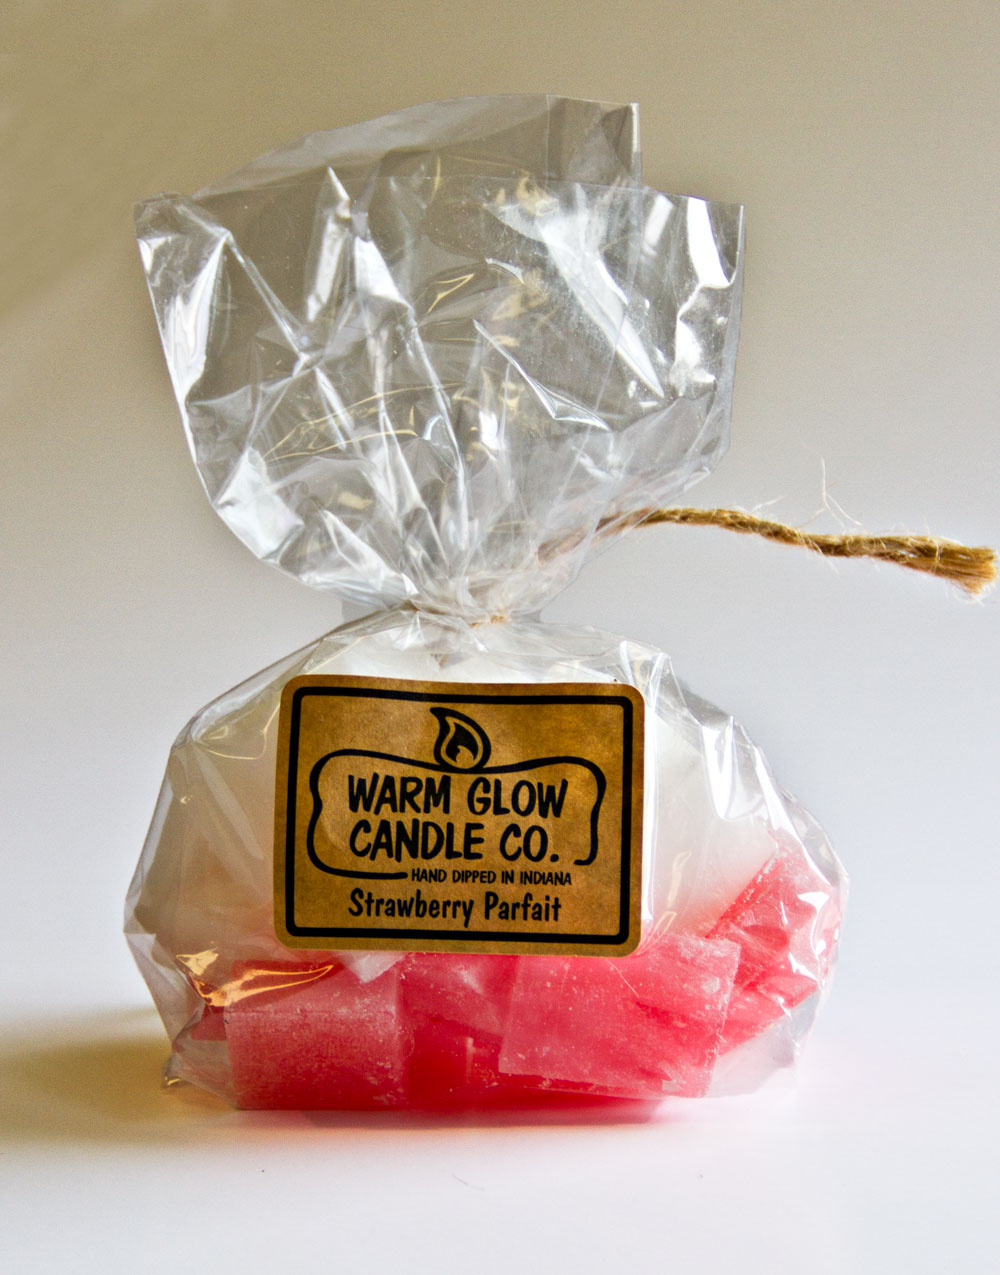 Strawberry Parfait Warm Glow Scented Wax Chips